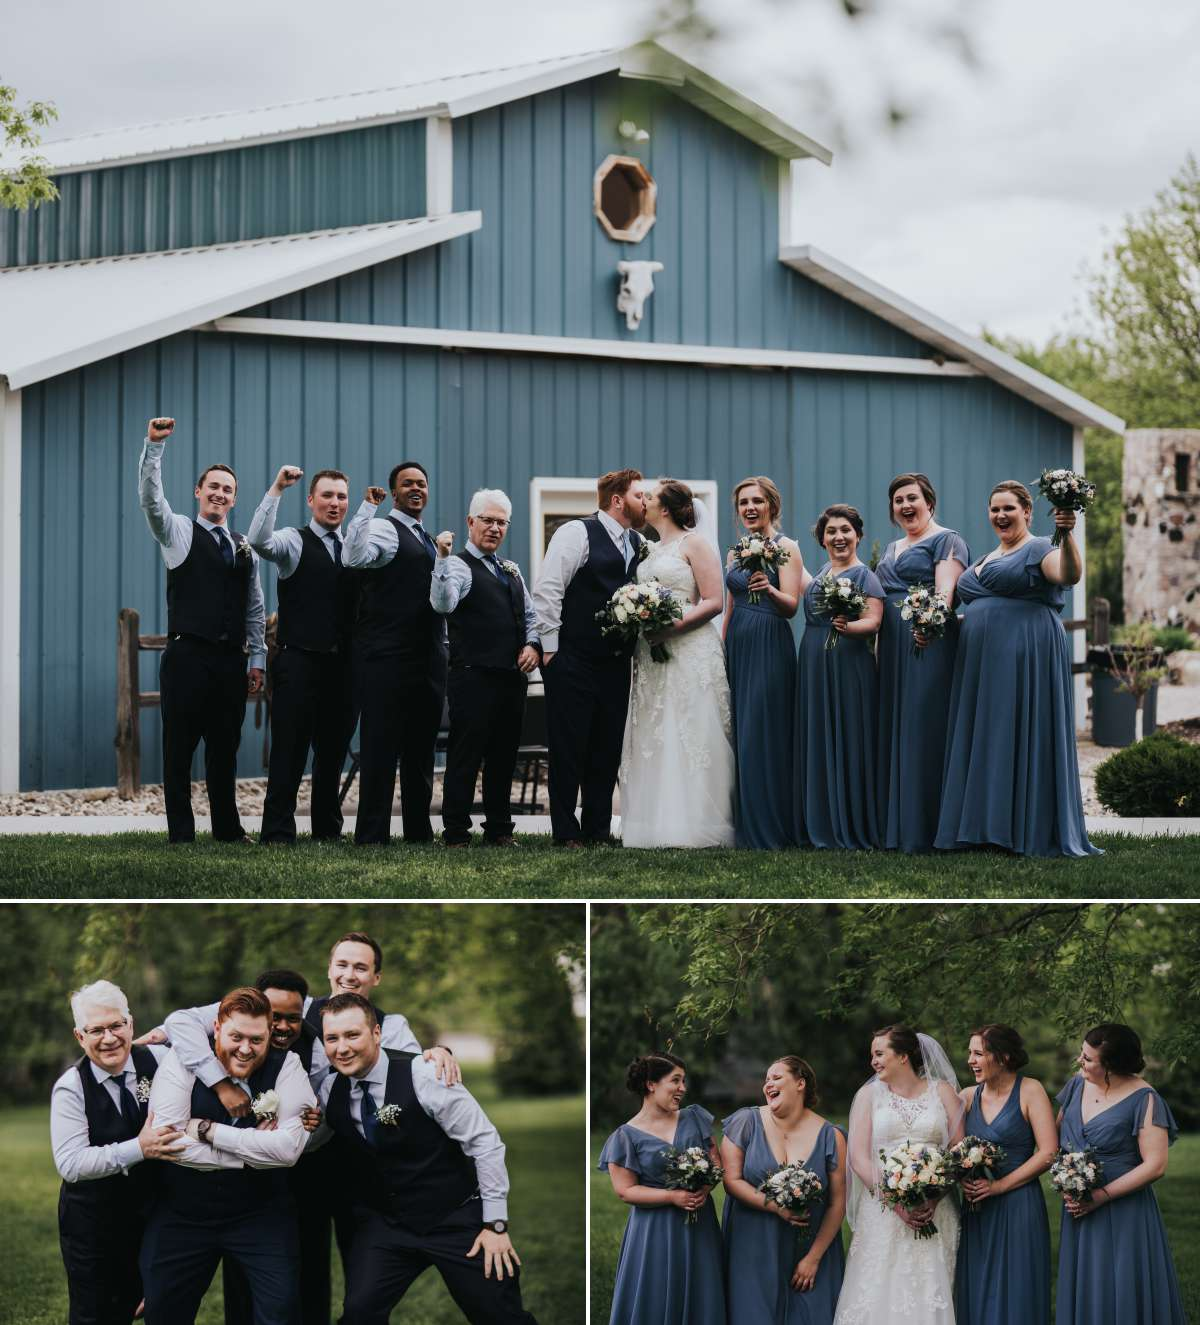 Bridal Party Photos at Romantic Moon Event Center